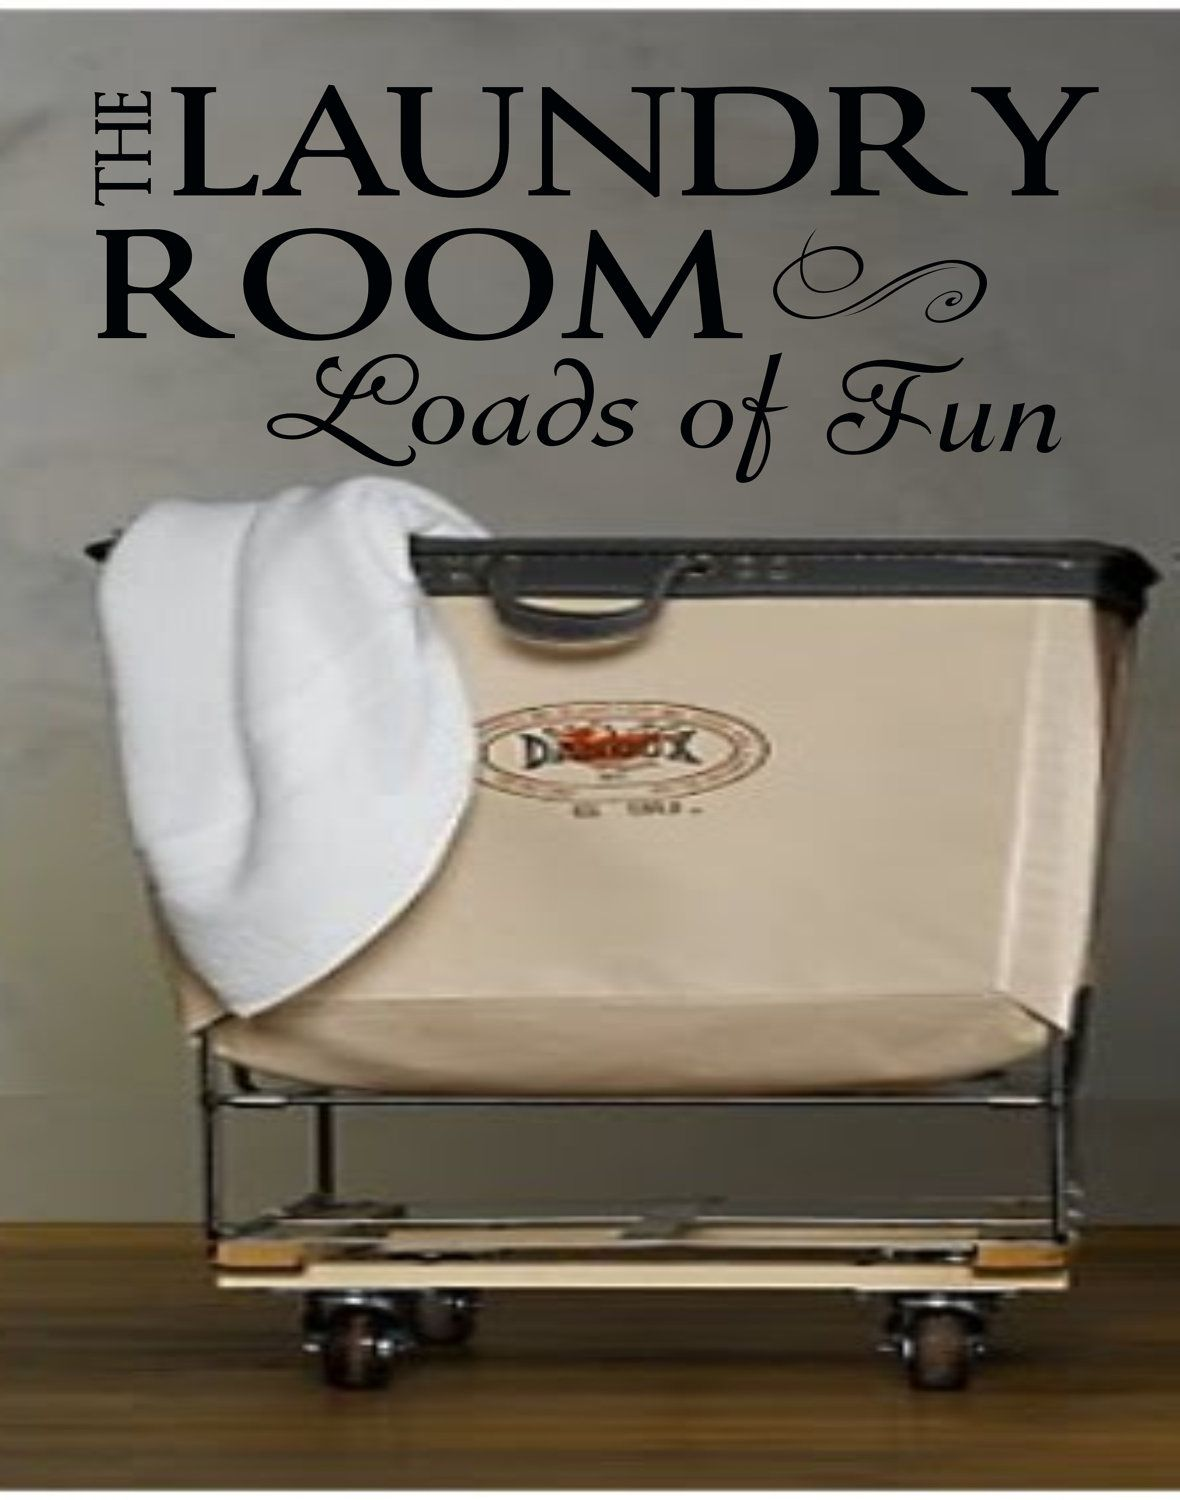 The Laundry Room Loads Of Fun Sign Laundry Sign The Laundry Room Loads Of Fun Decalmudroom Vinyl